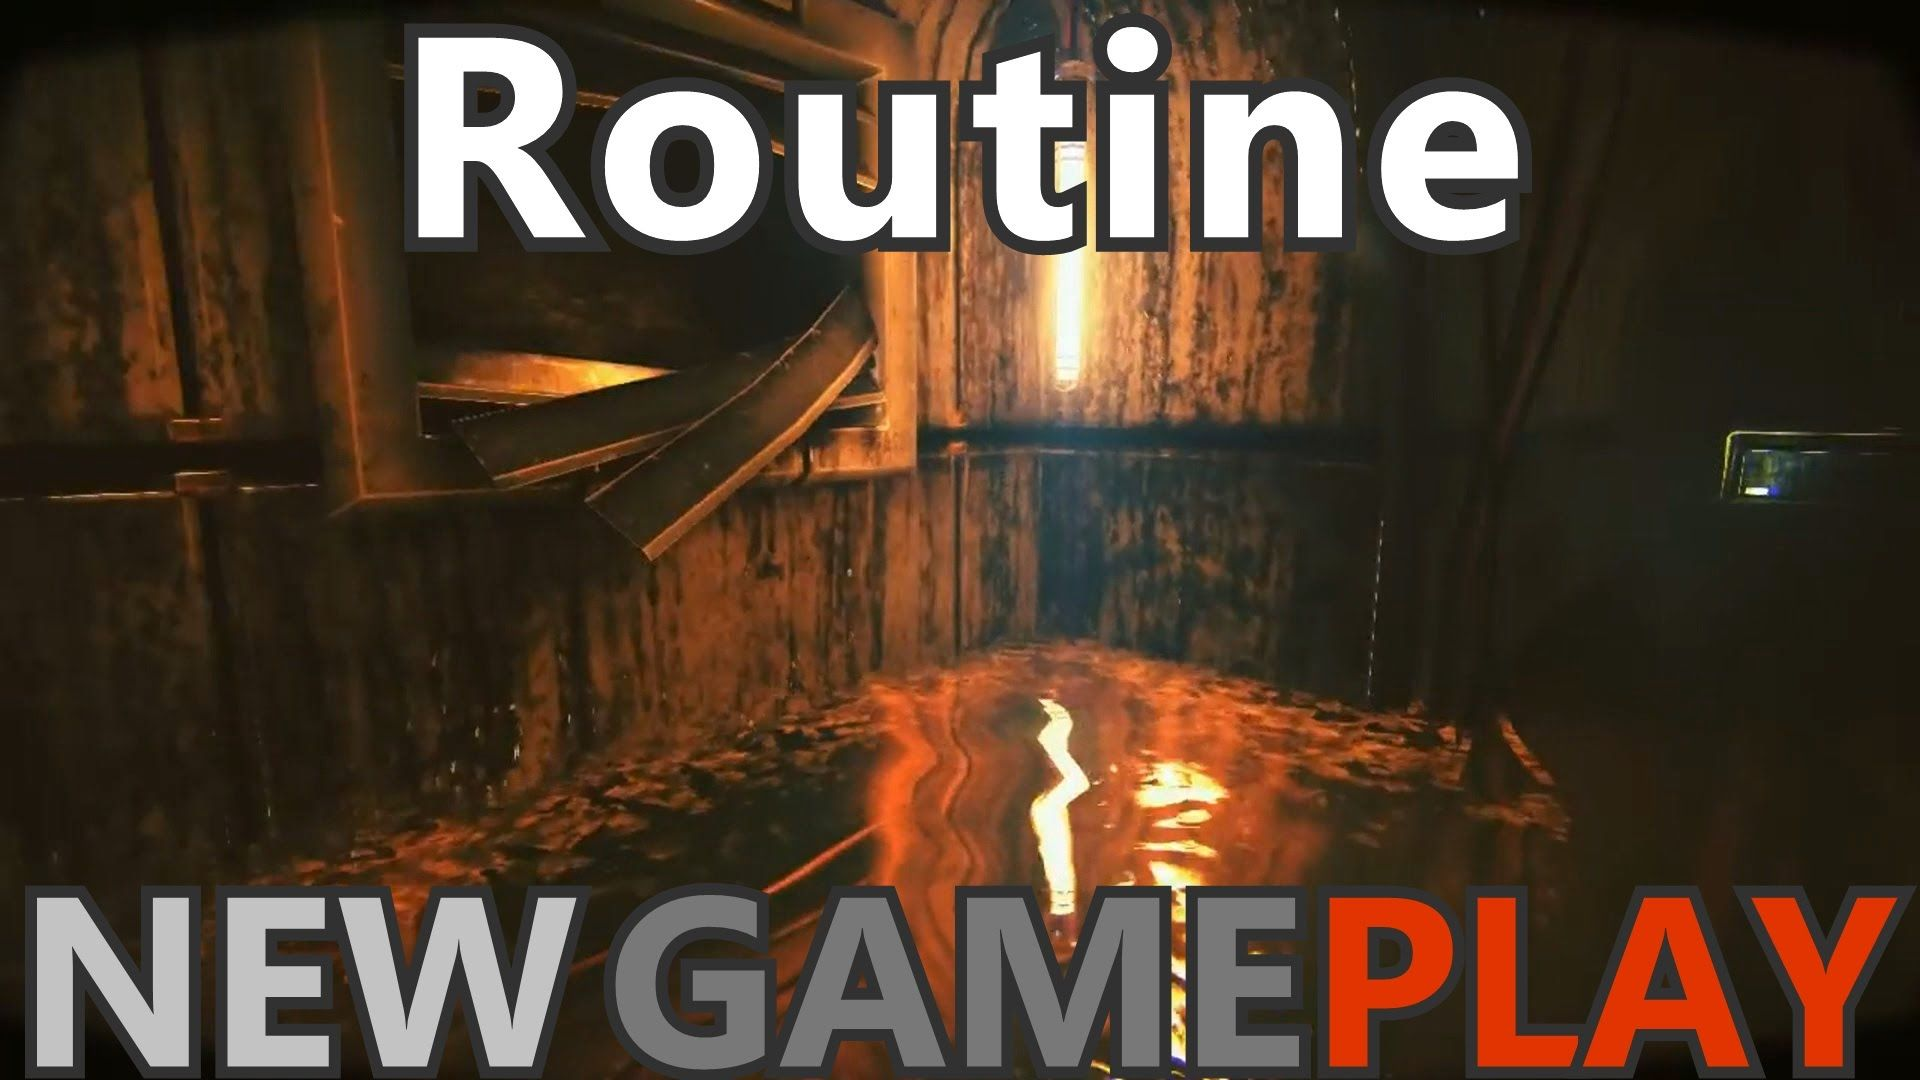 Routine New Gameplay Part 1 Release Date #PC #Windows